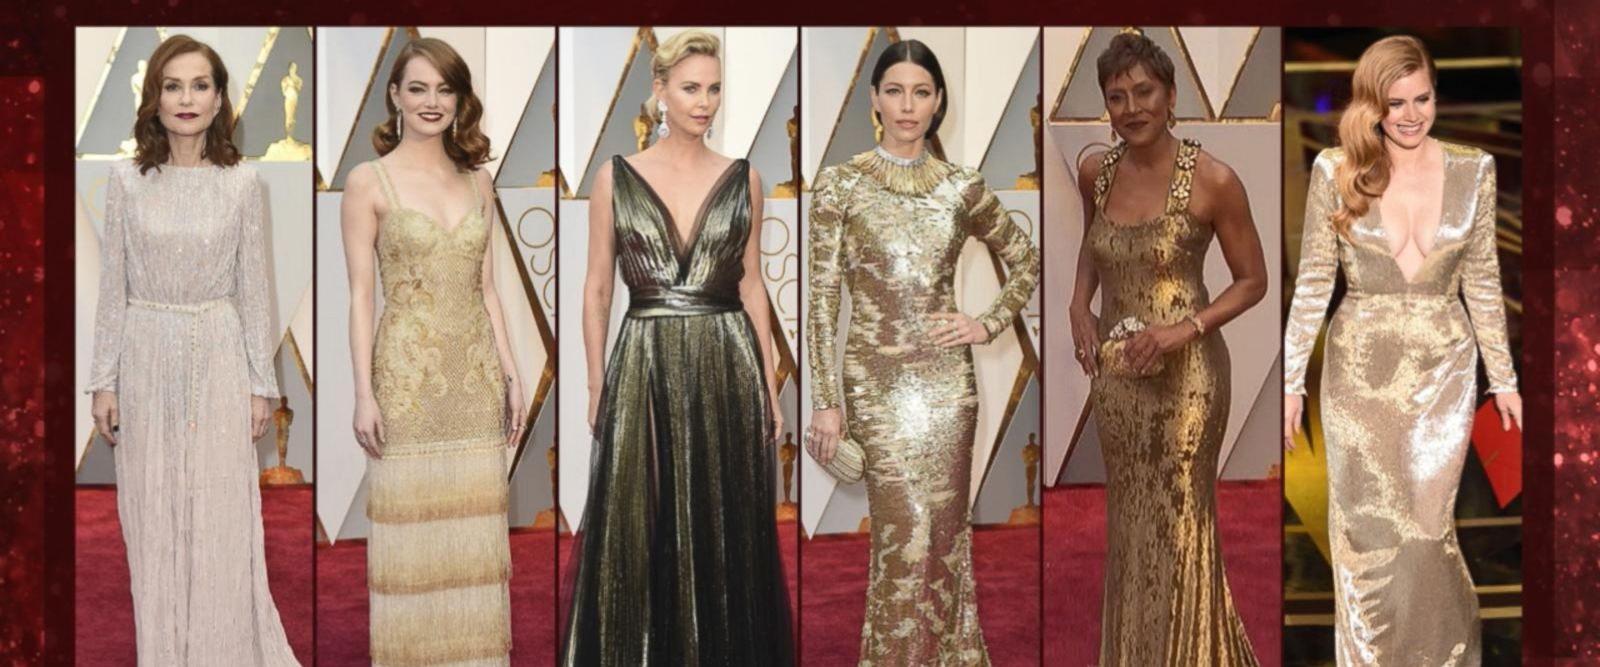 VIDEO: The hottest fashion looks from the Oscars red carpet